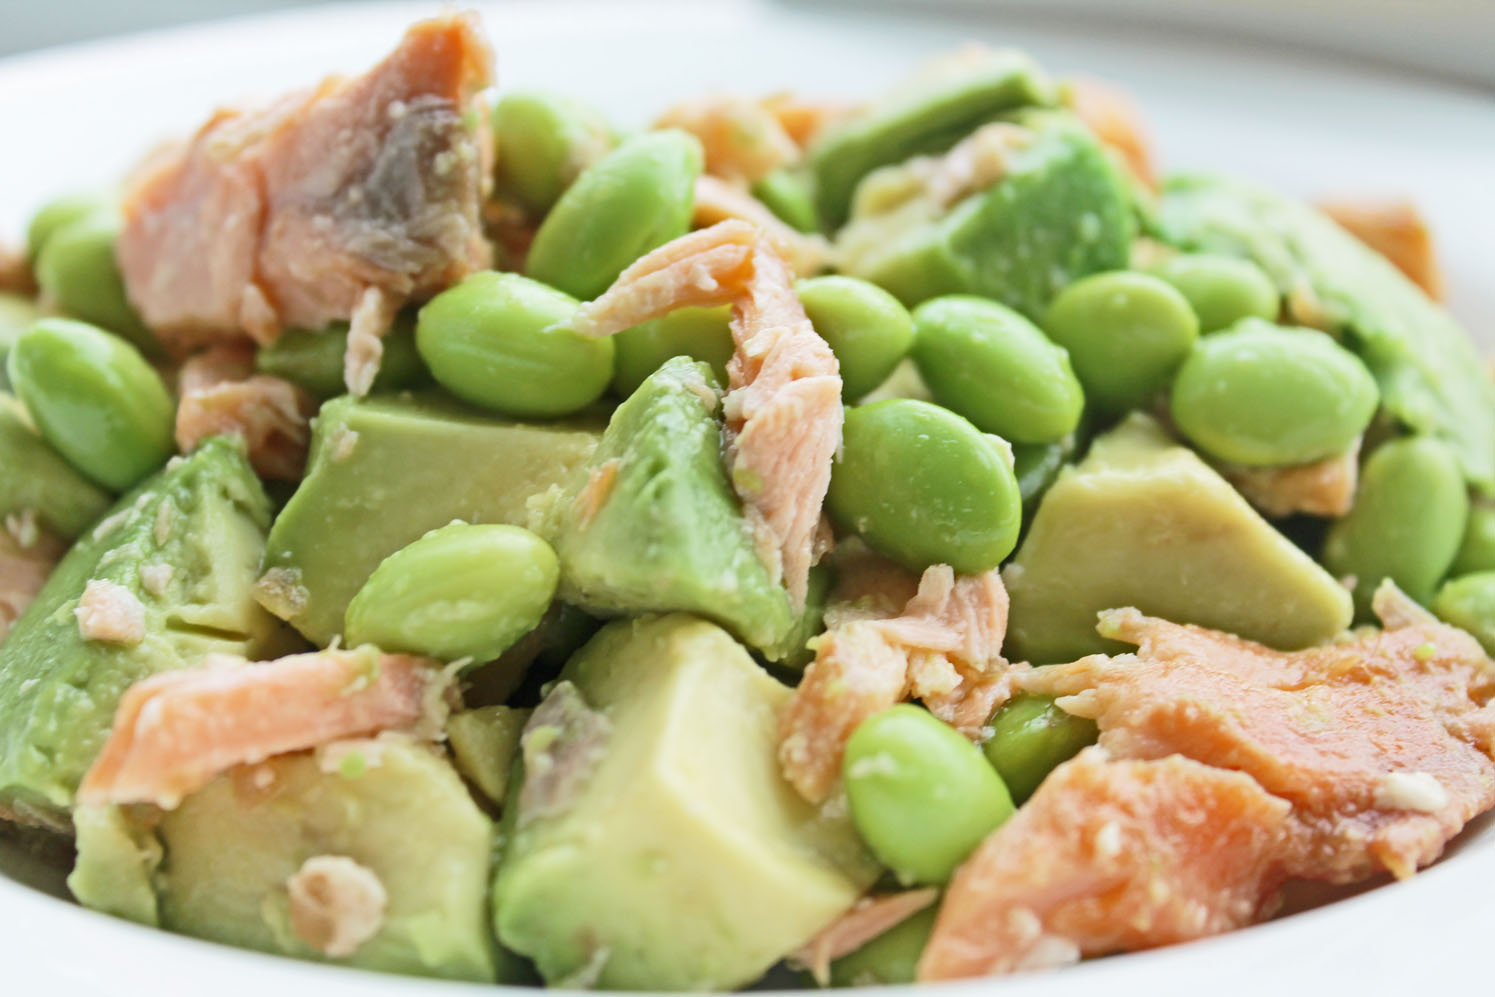 What are the health benefits of edamame?